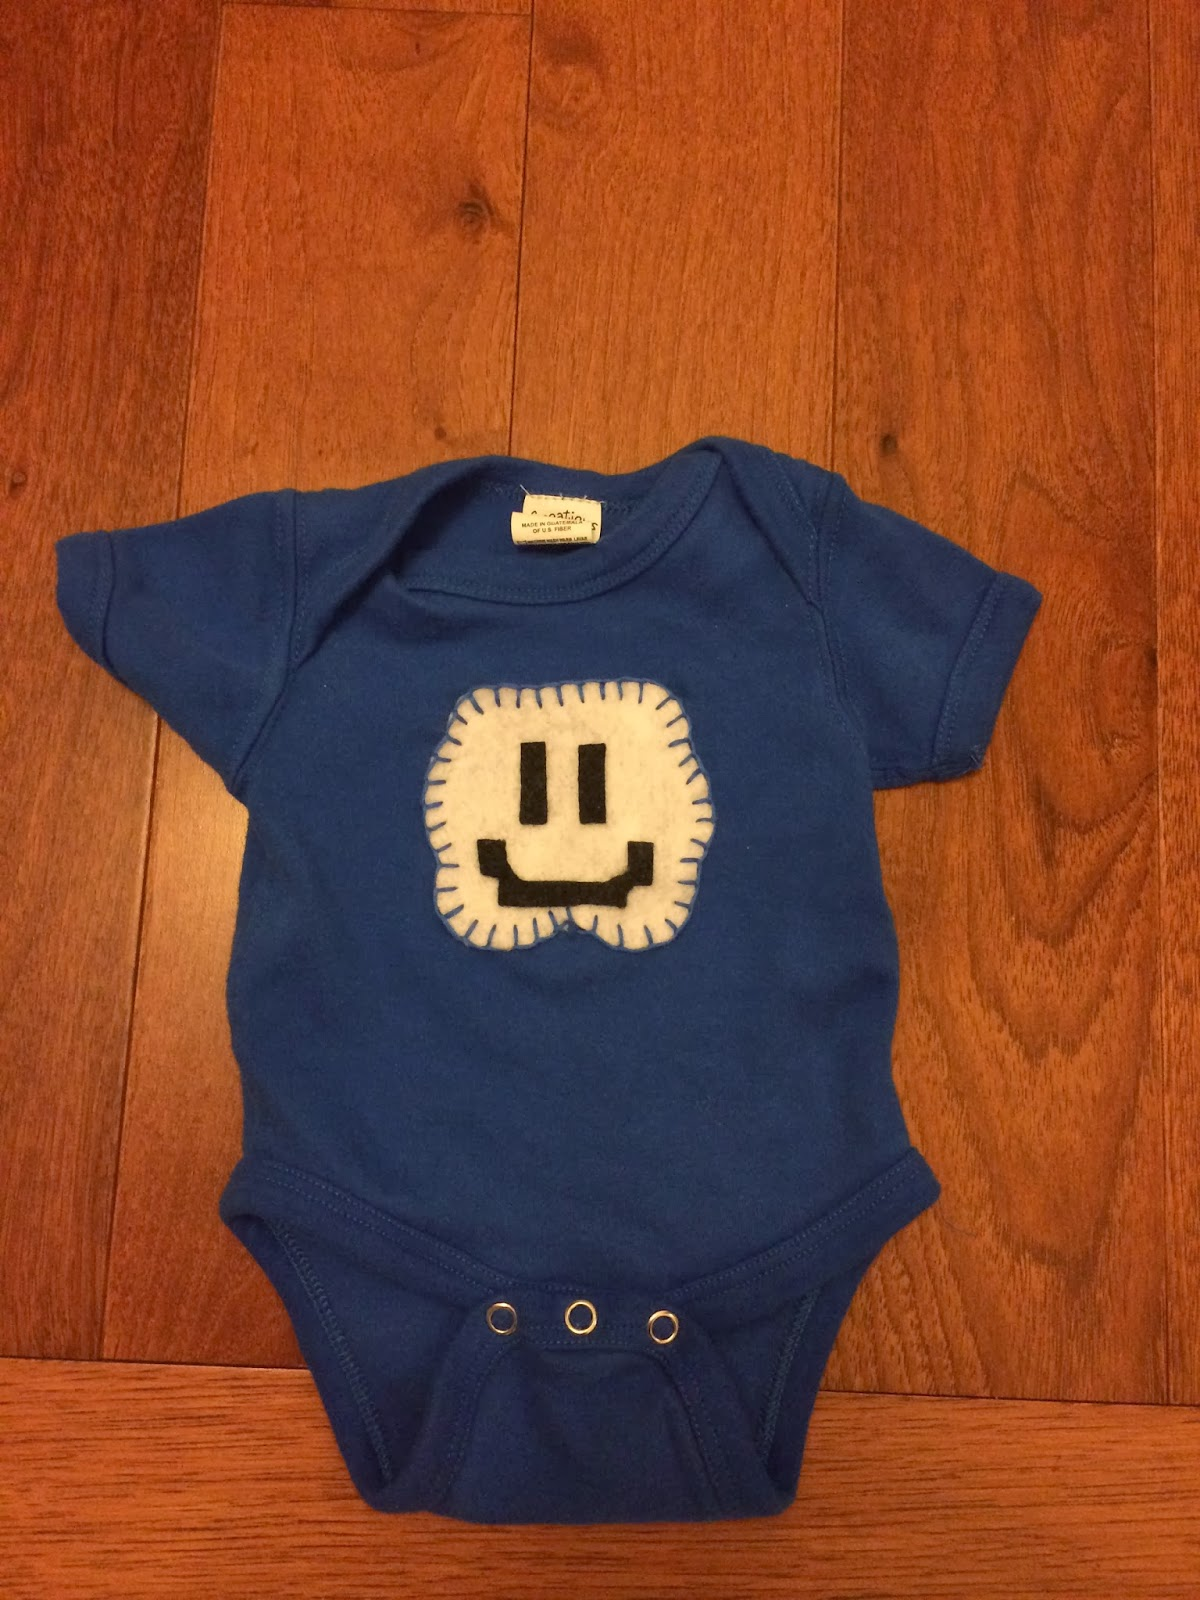 Super Mario Bros. 3 Cloud - Felt applique onesie diy